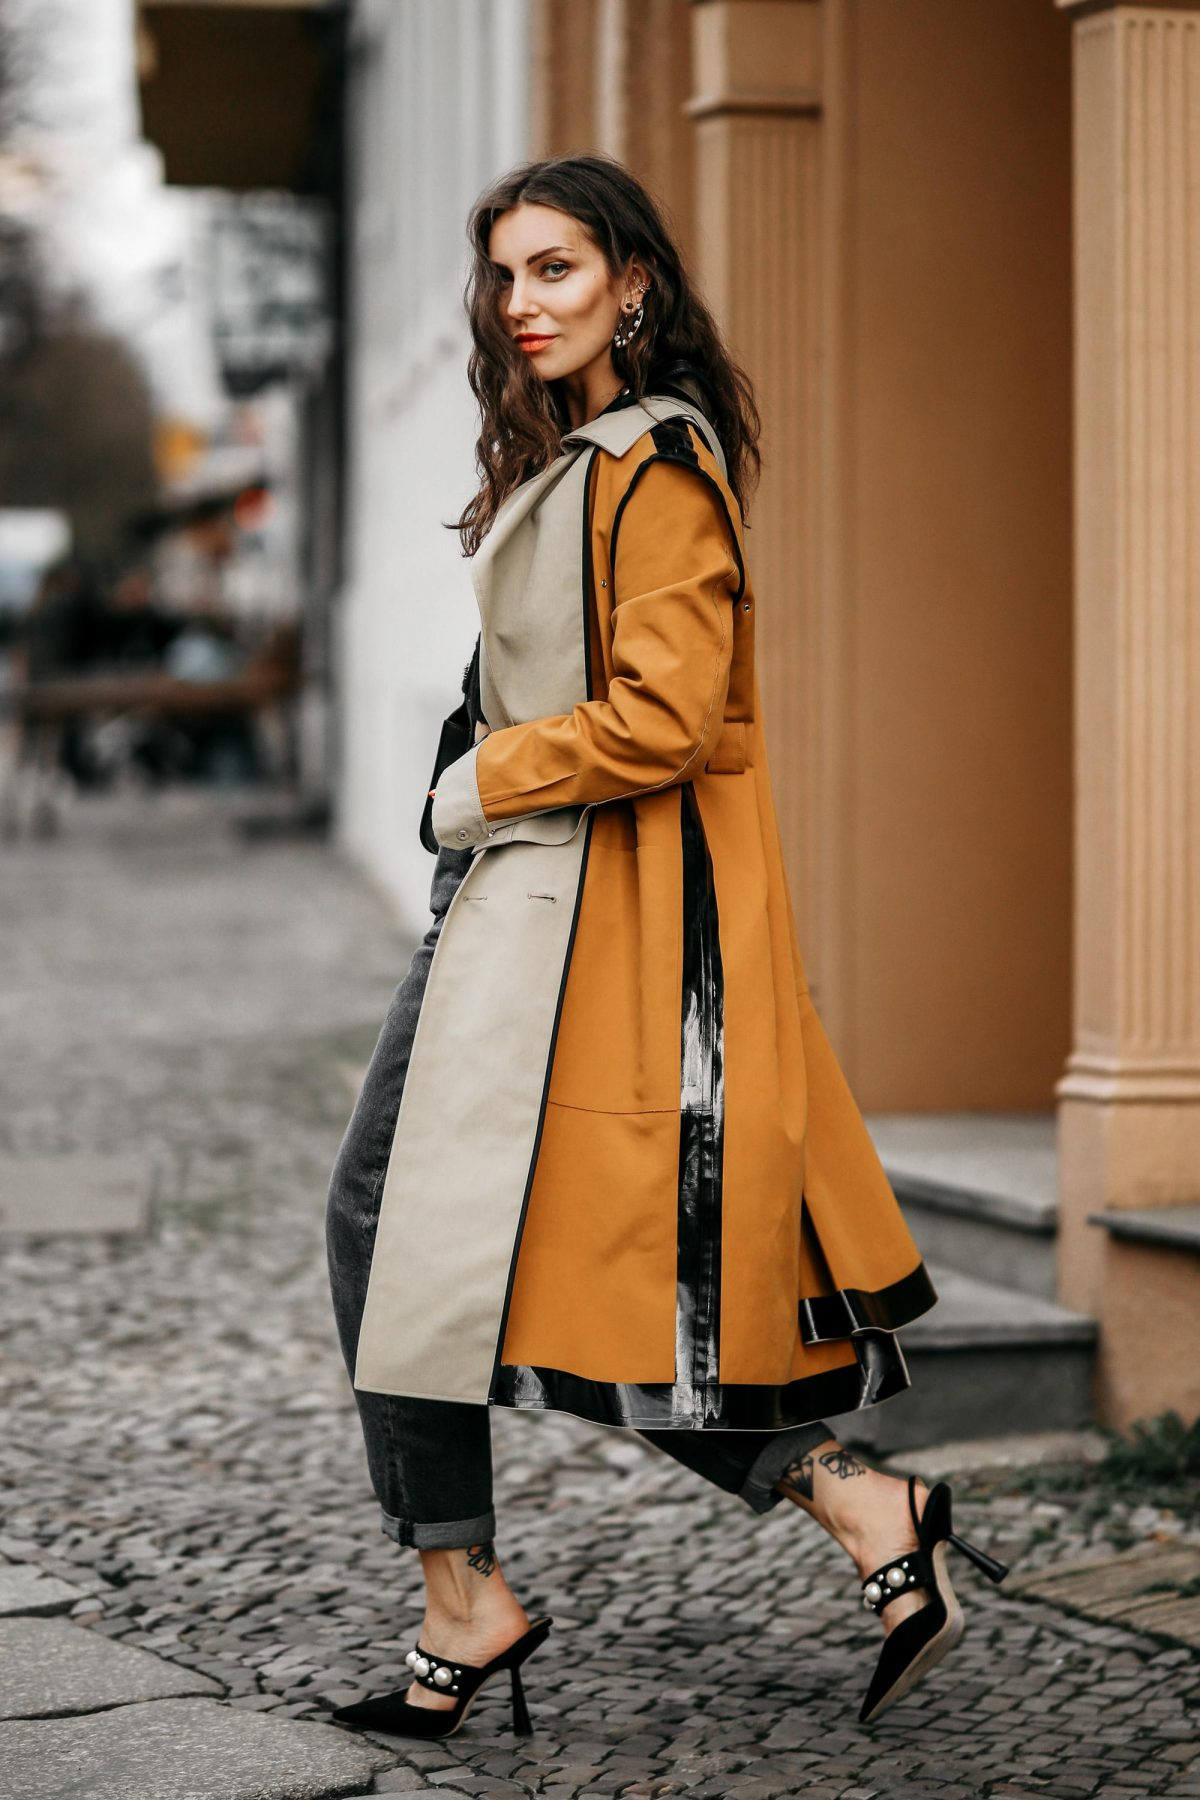 The Summer Trench Coat